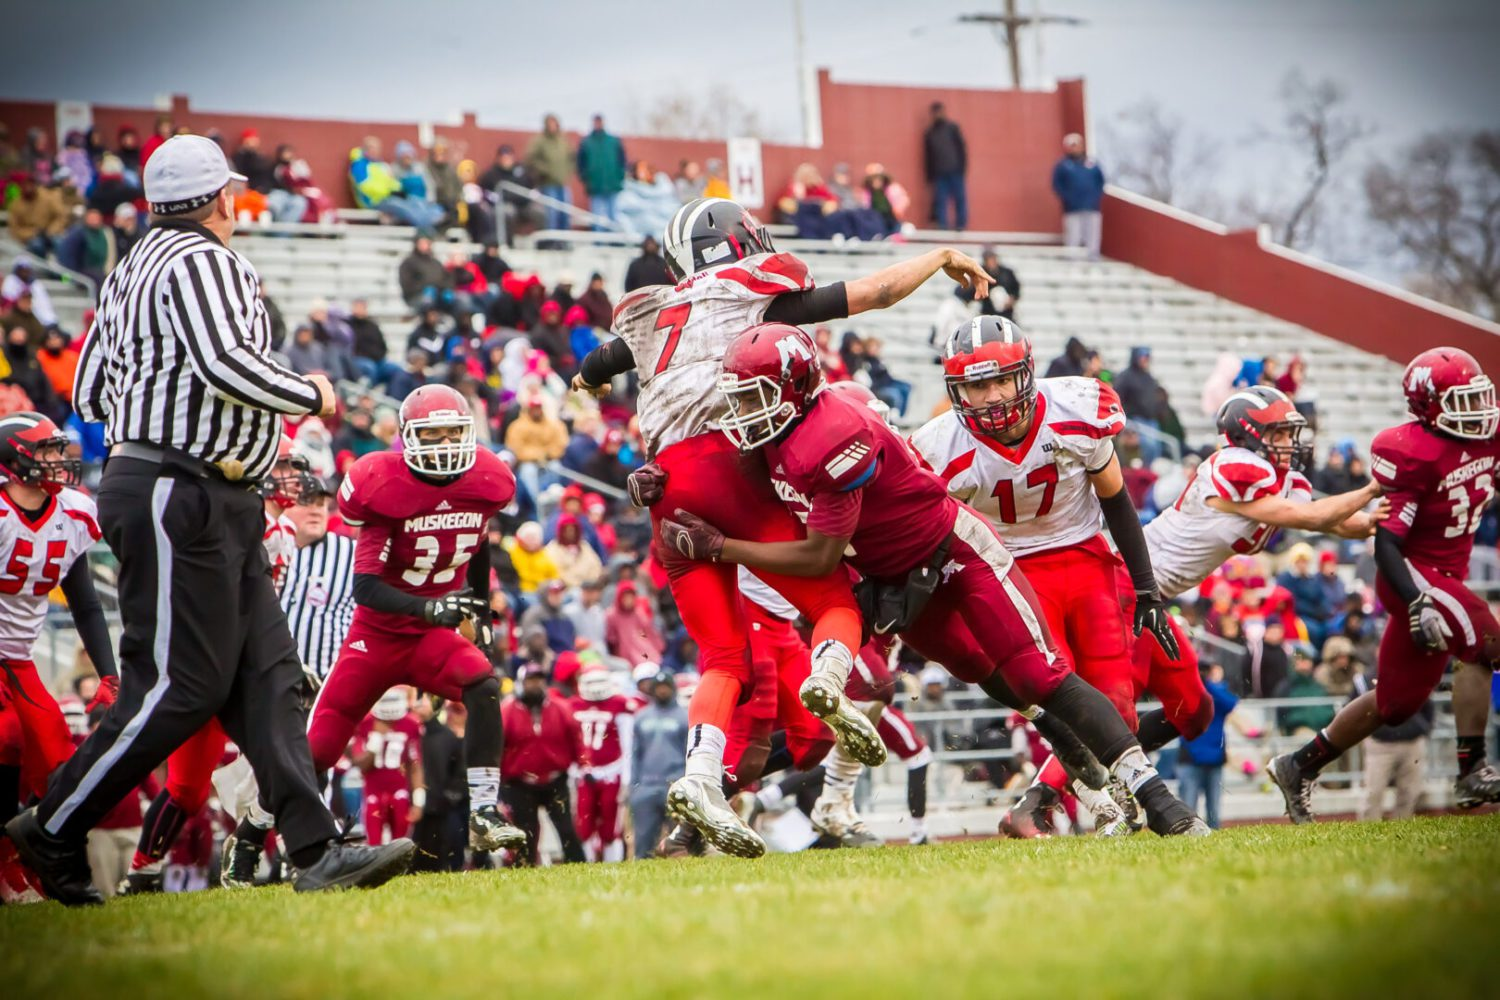 Division 3 regional preview: Beating Petoskey is the next step on Muskegon's 'ladder to the state finals'